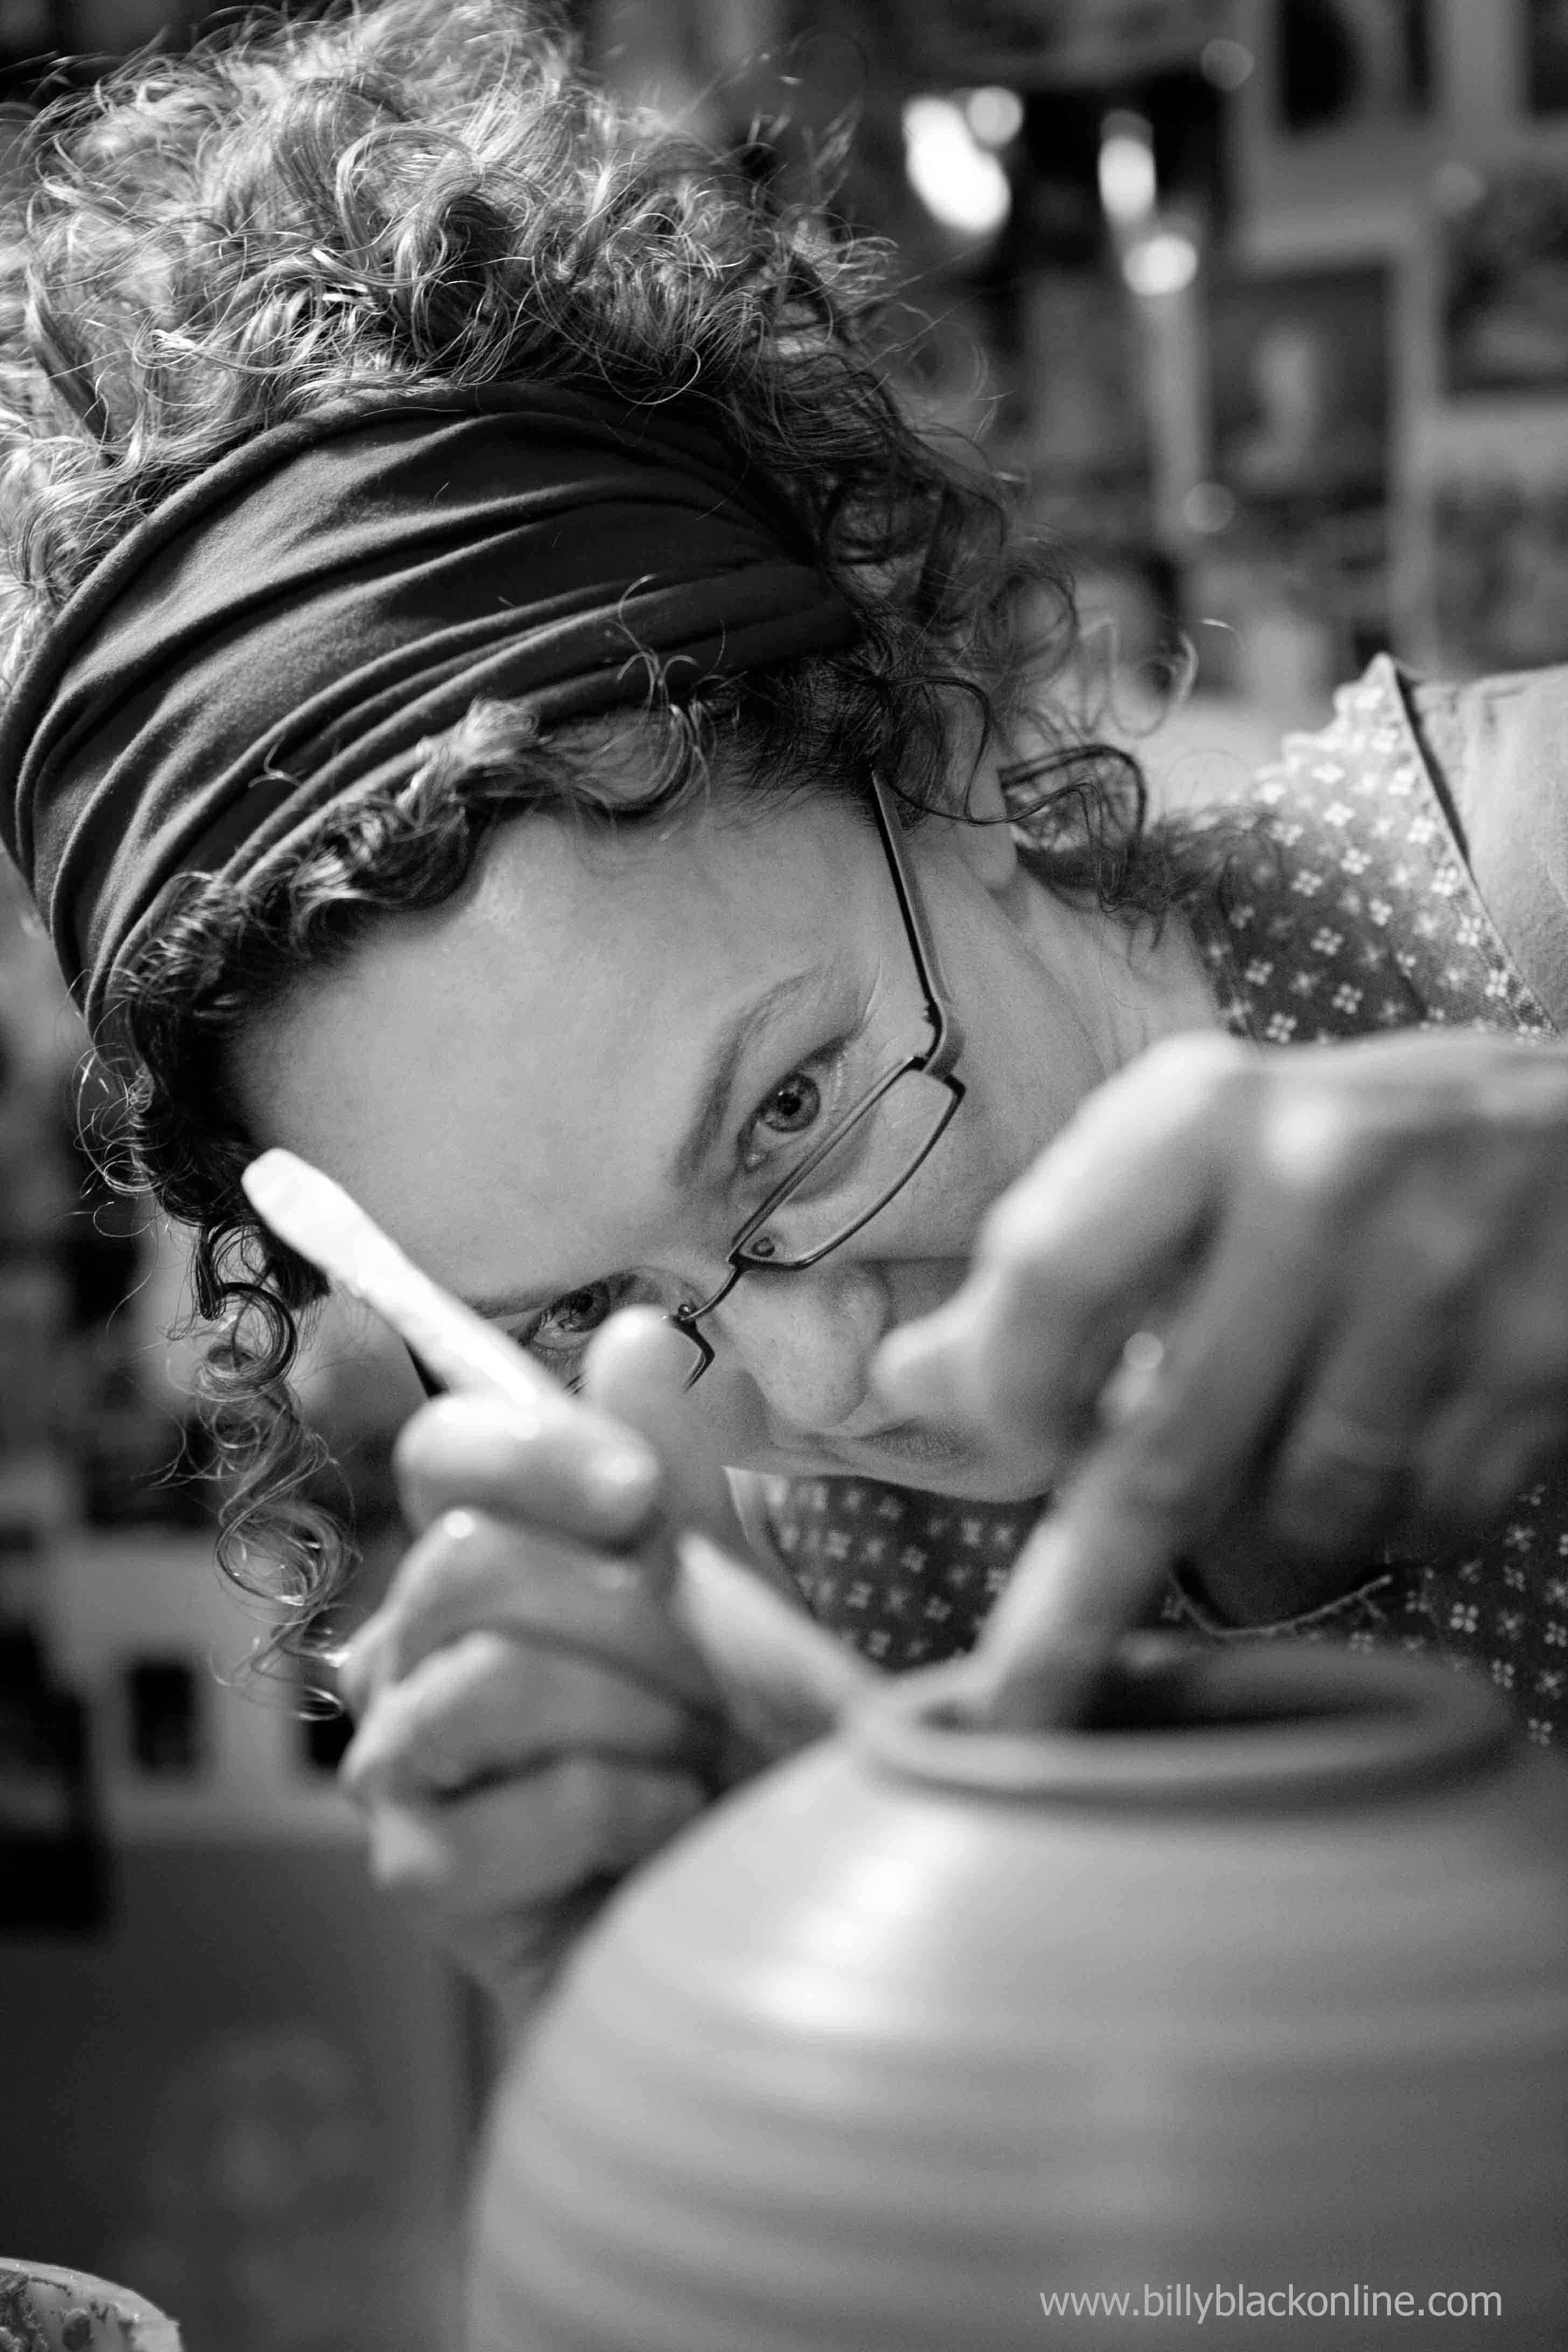 Smith at the wheel in her shop. Photo by Billy Black